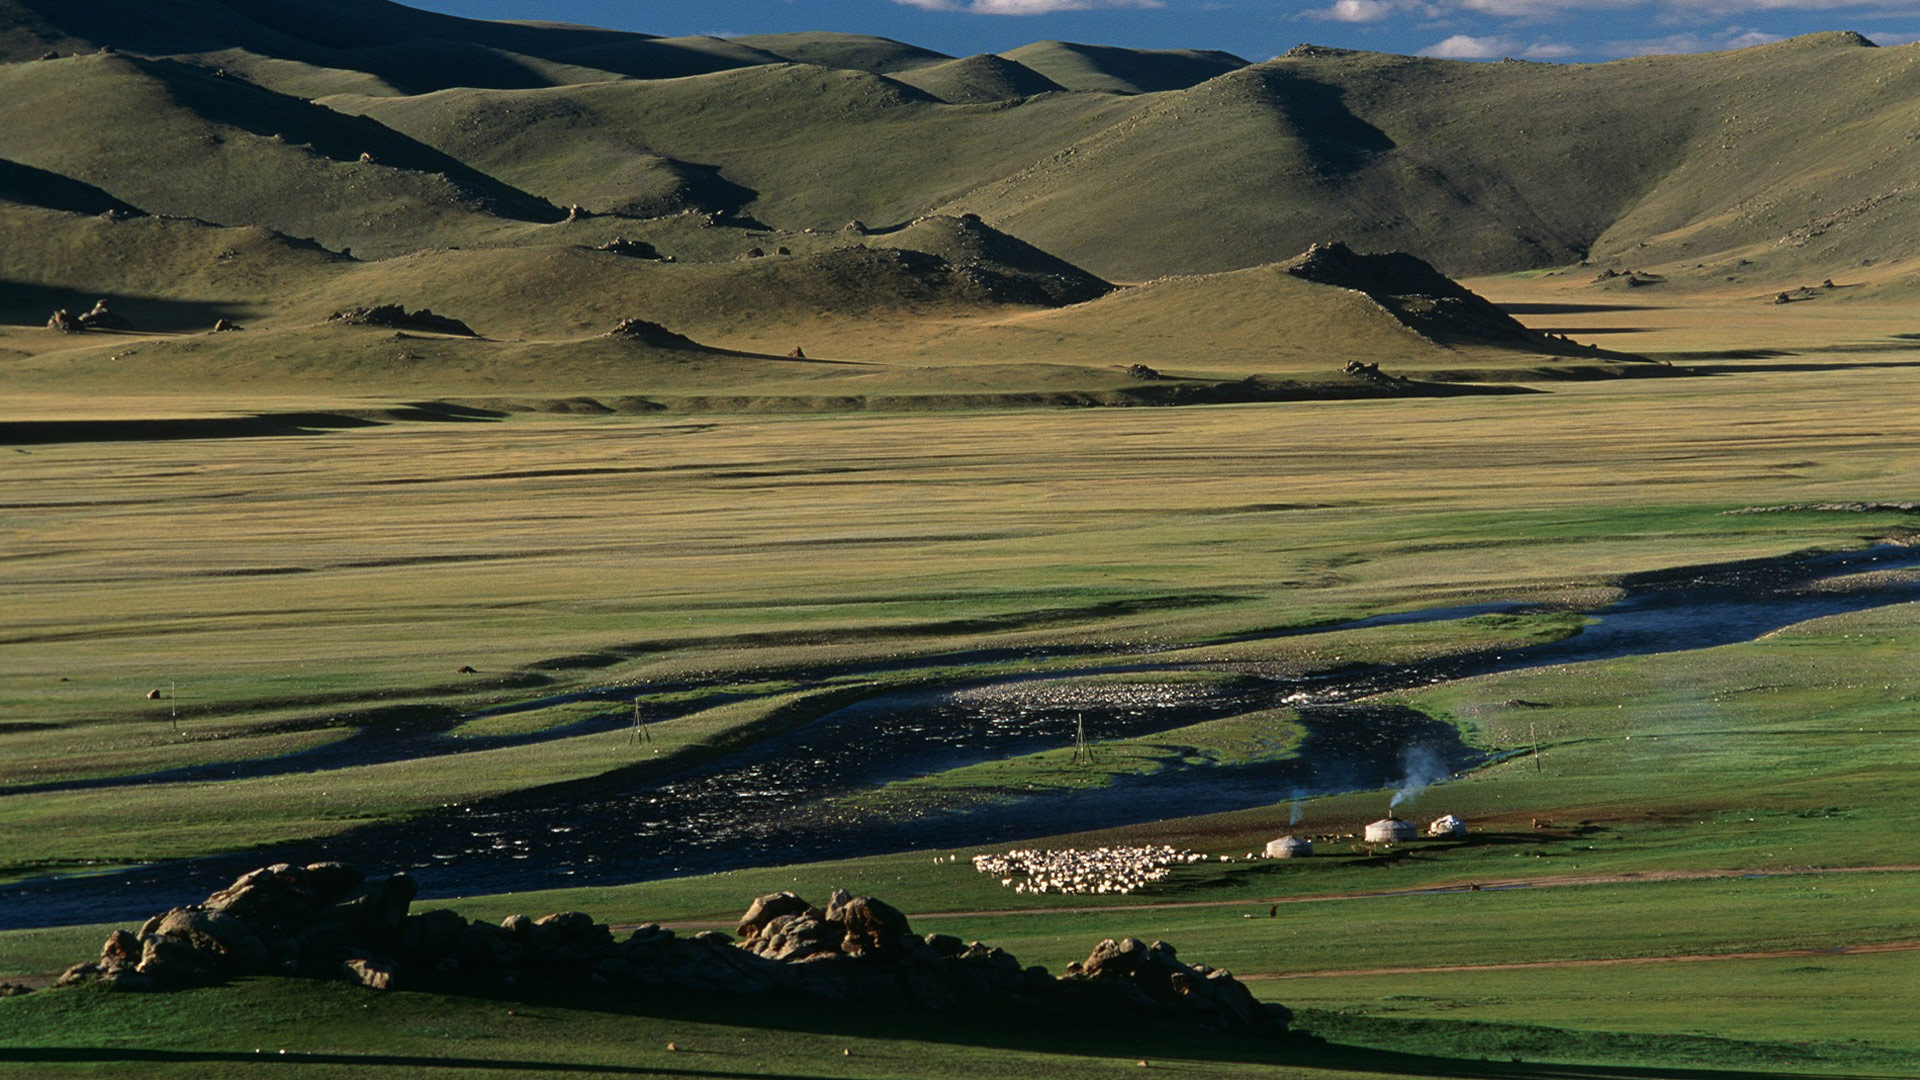 Yurts next to a river on the steppeland, Mongolia with GeoEx